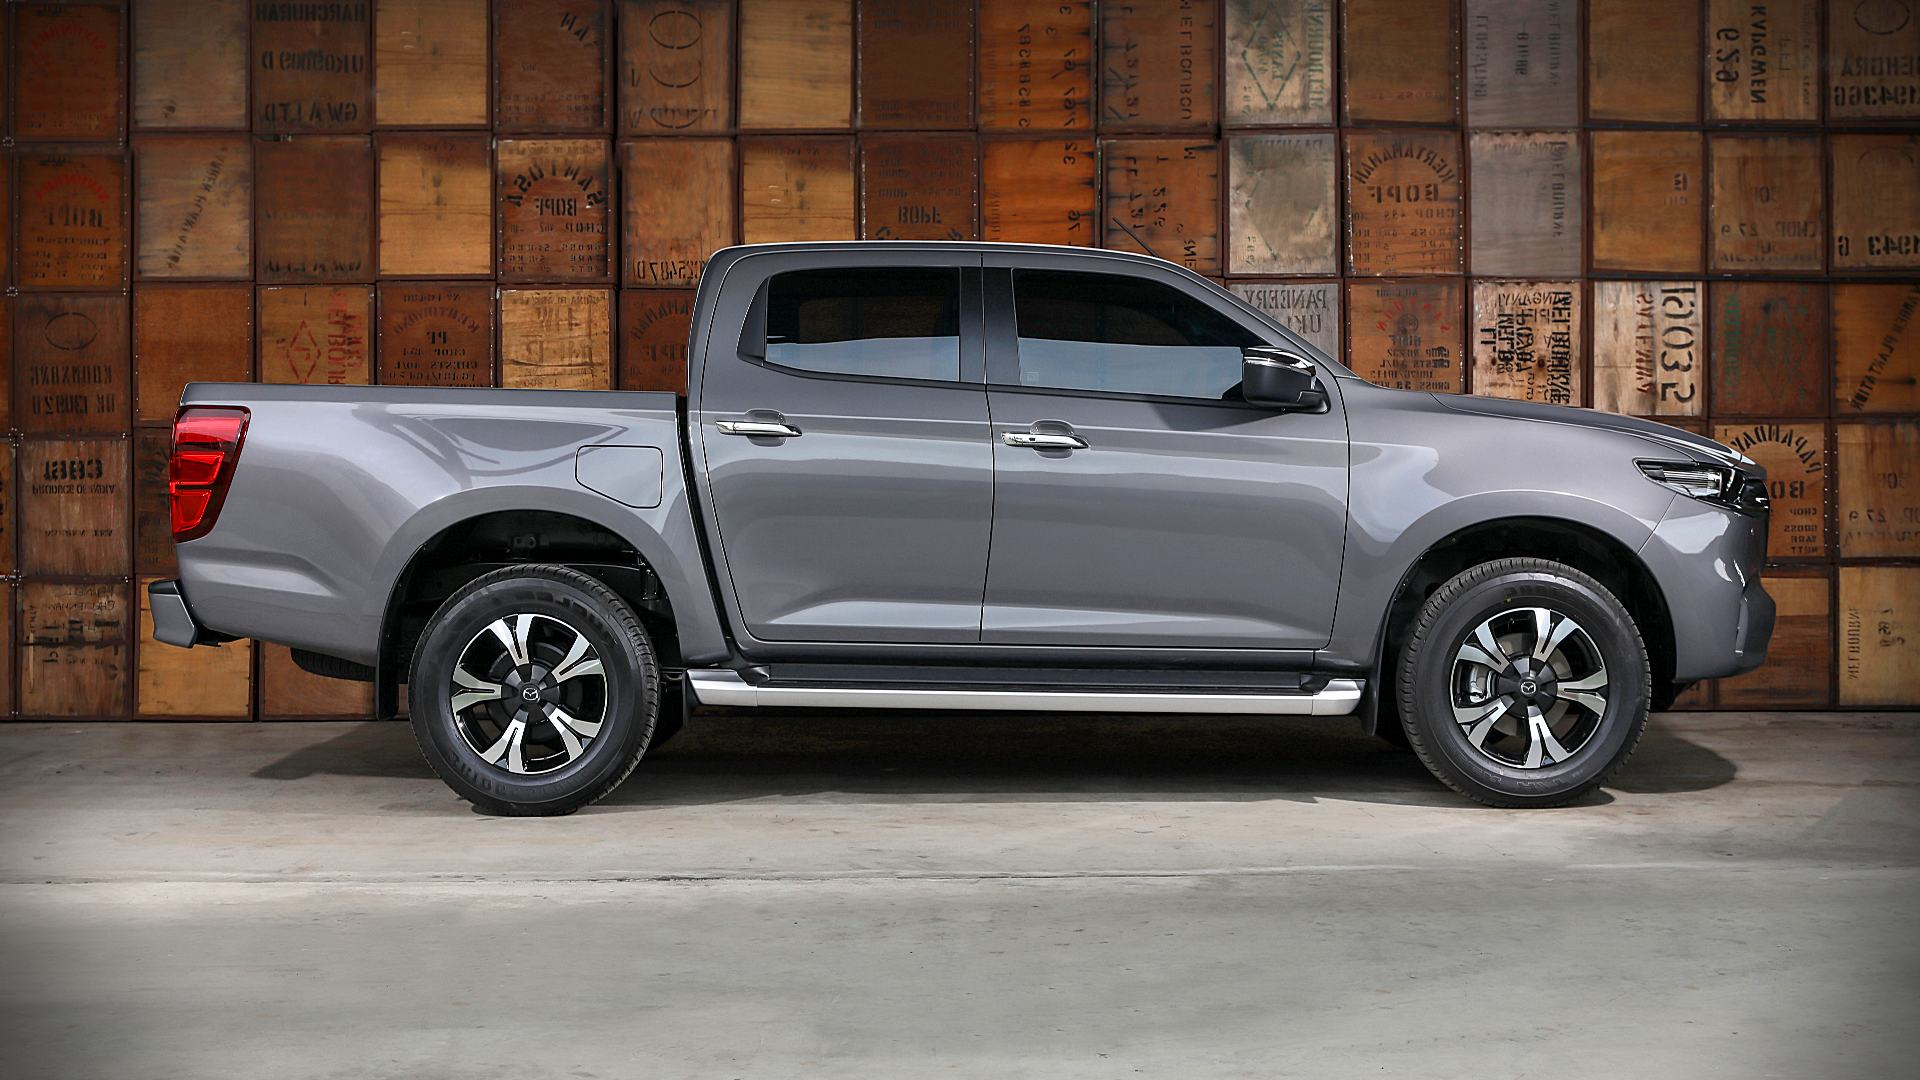 2021 mazda bt-50 is set to impress with new lineup